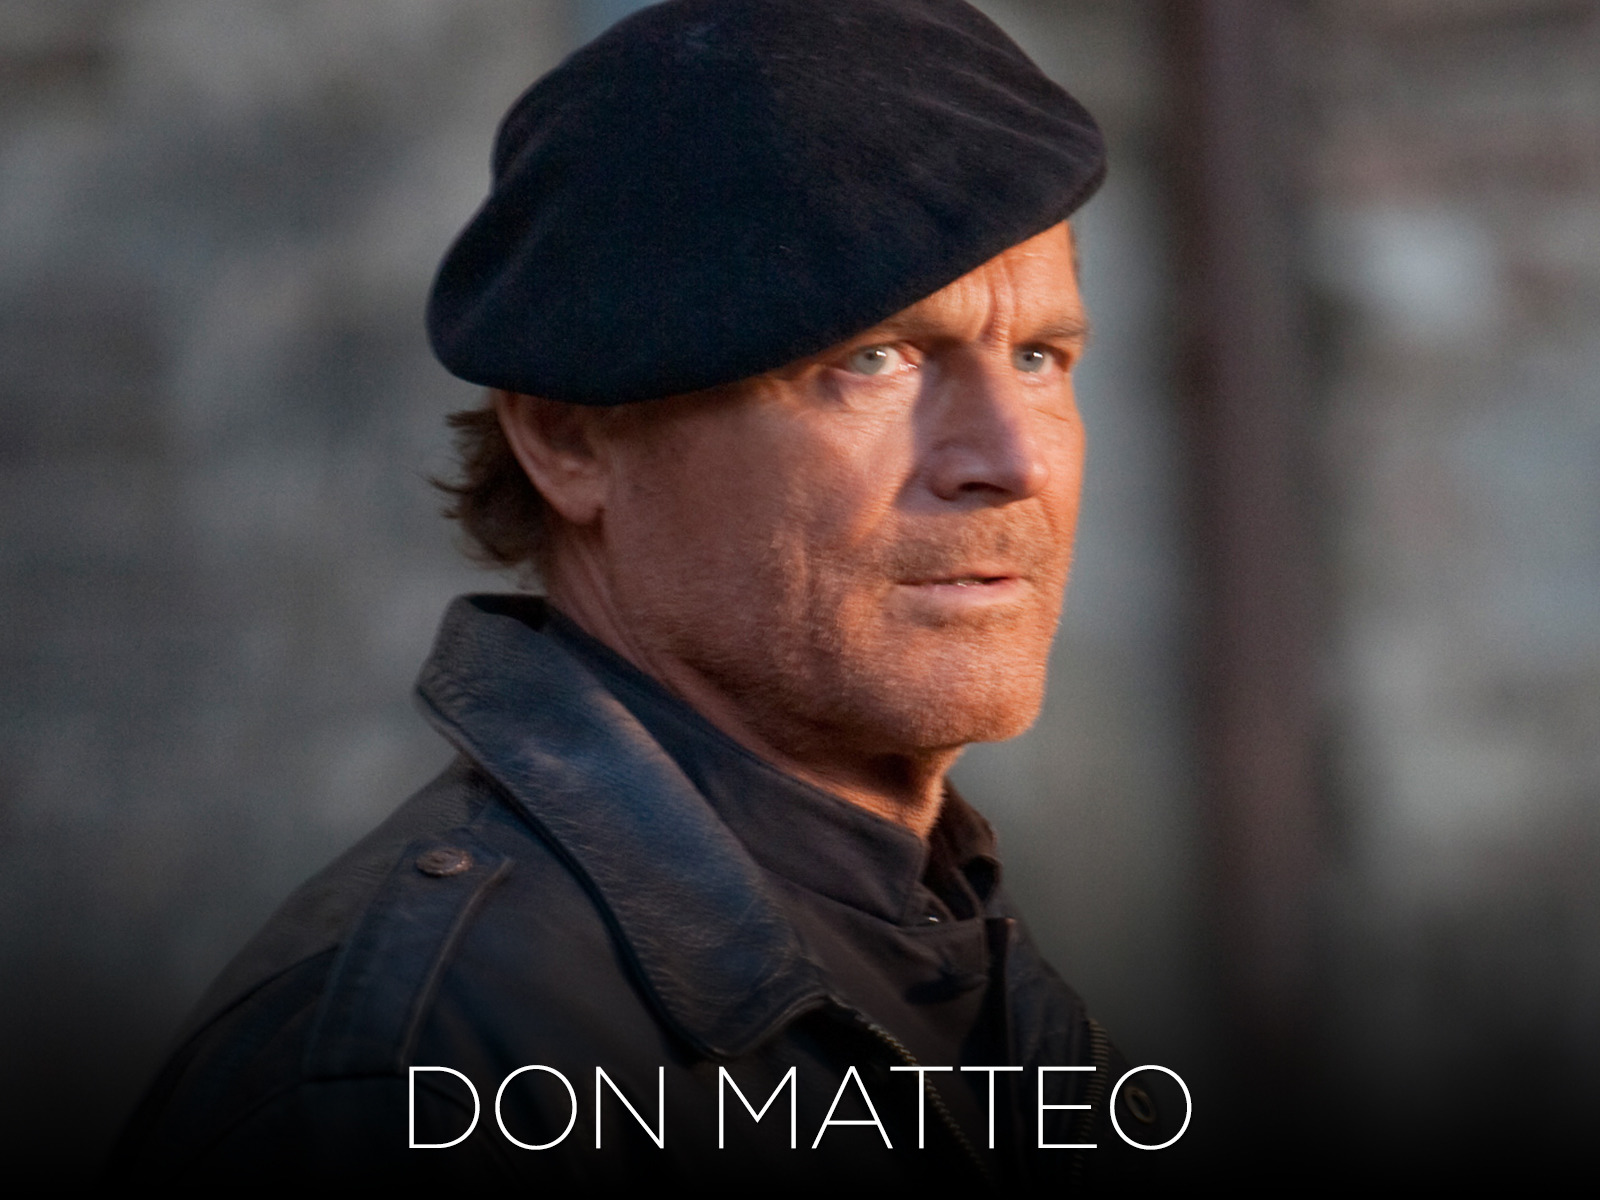 Watch Don Matteo Season 5 Episode 17: Memory Lapse on Rai 1